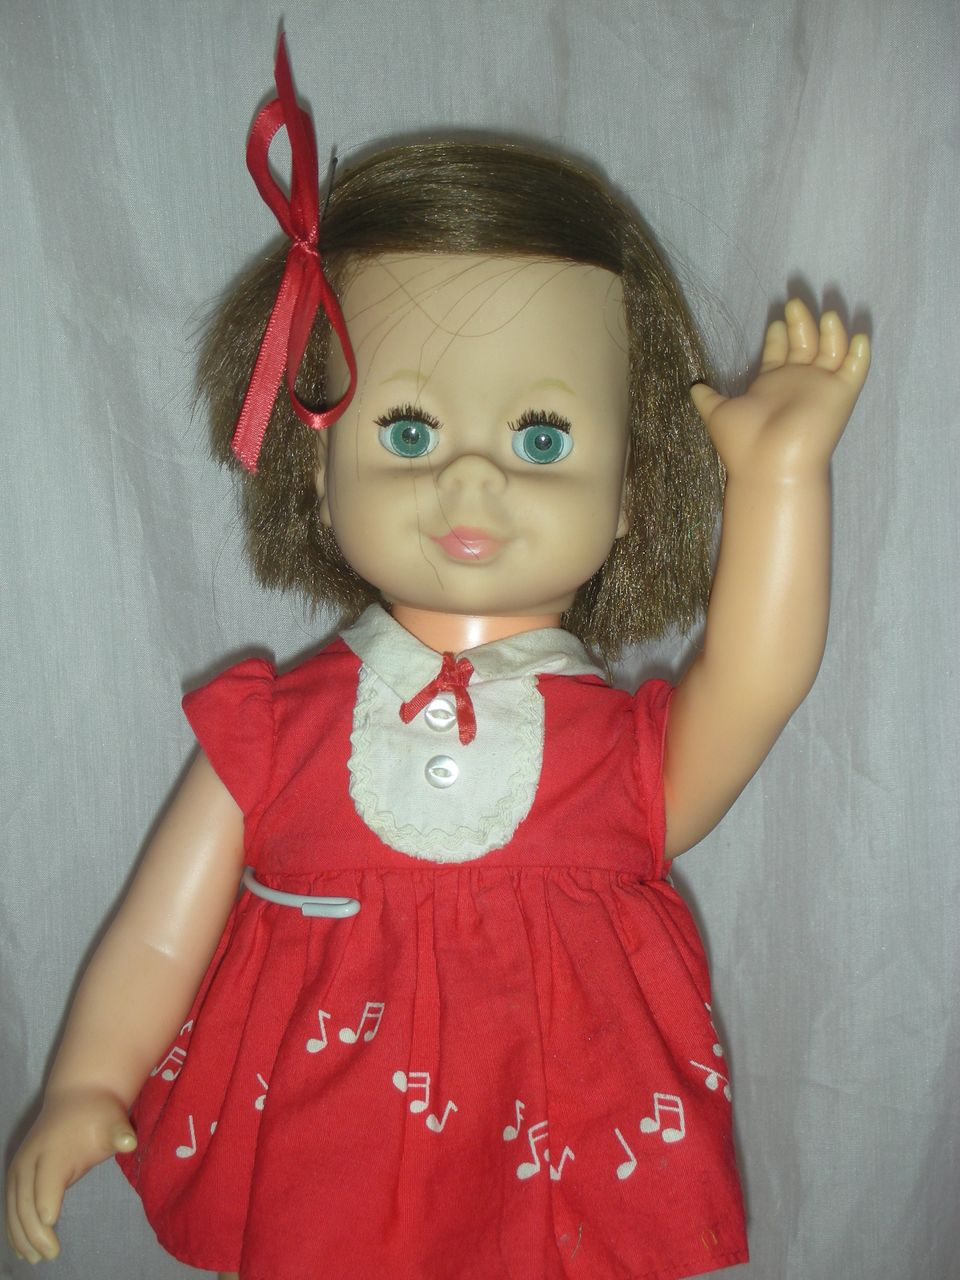 Rare Vintage 1960's Mattel Singing Chatty Cathy Doll all Original